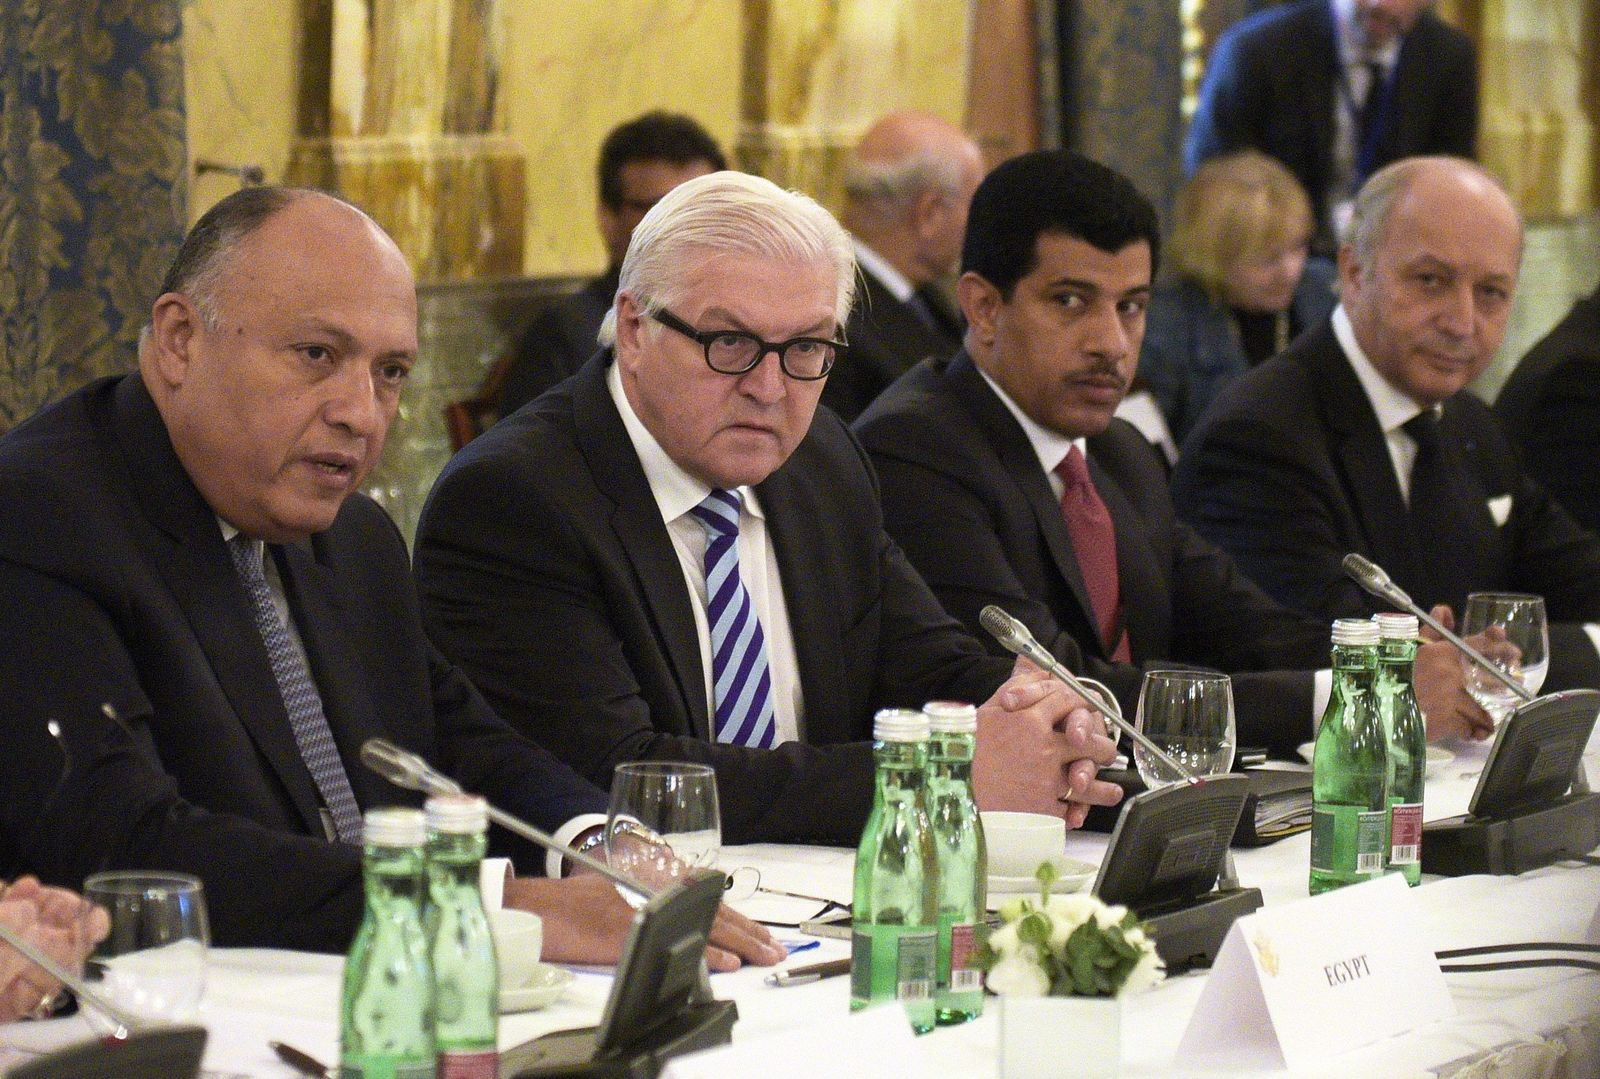 Syria conference in Vienna attempts to find solution to conflict